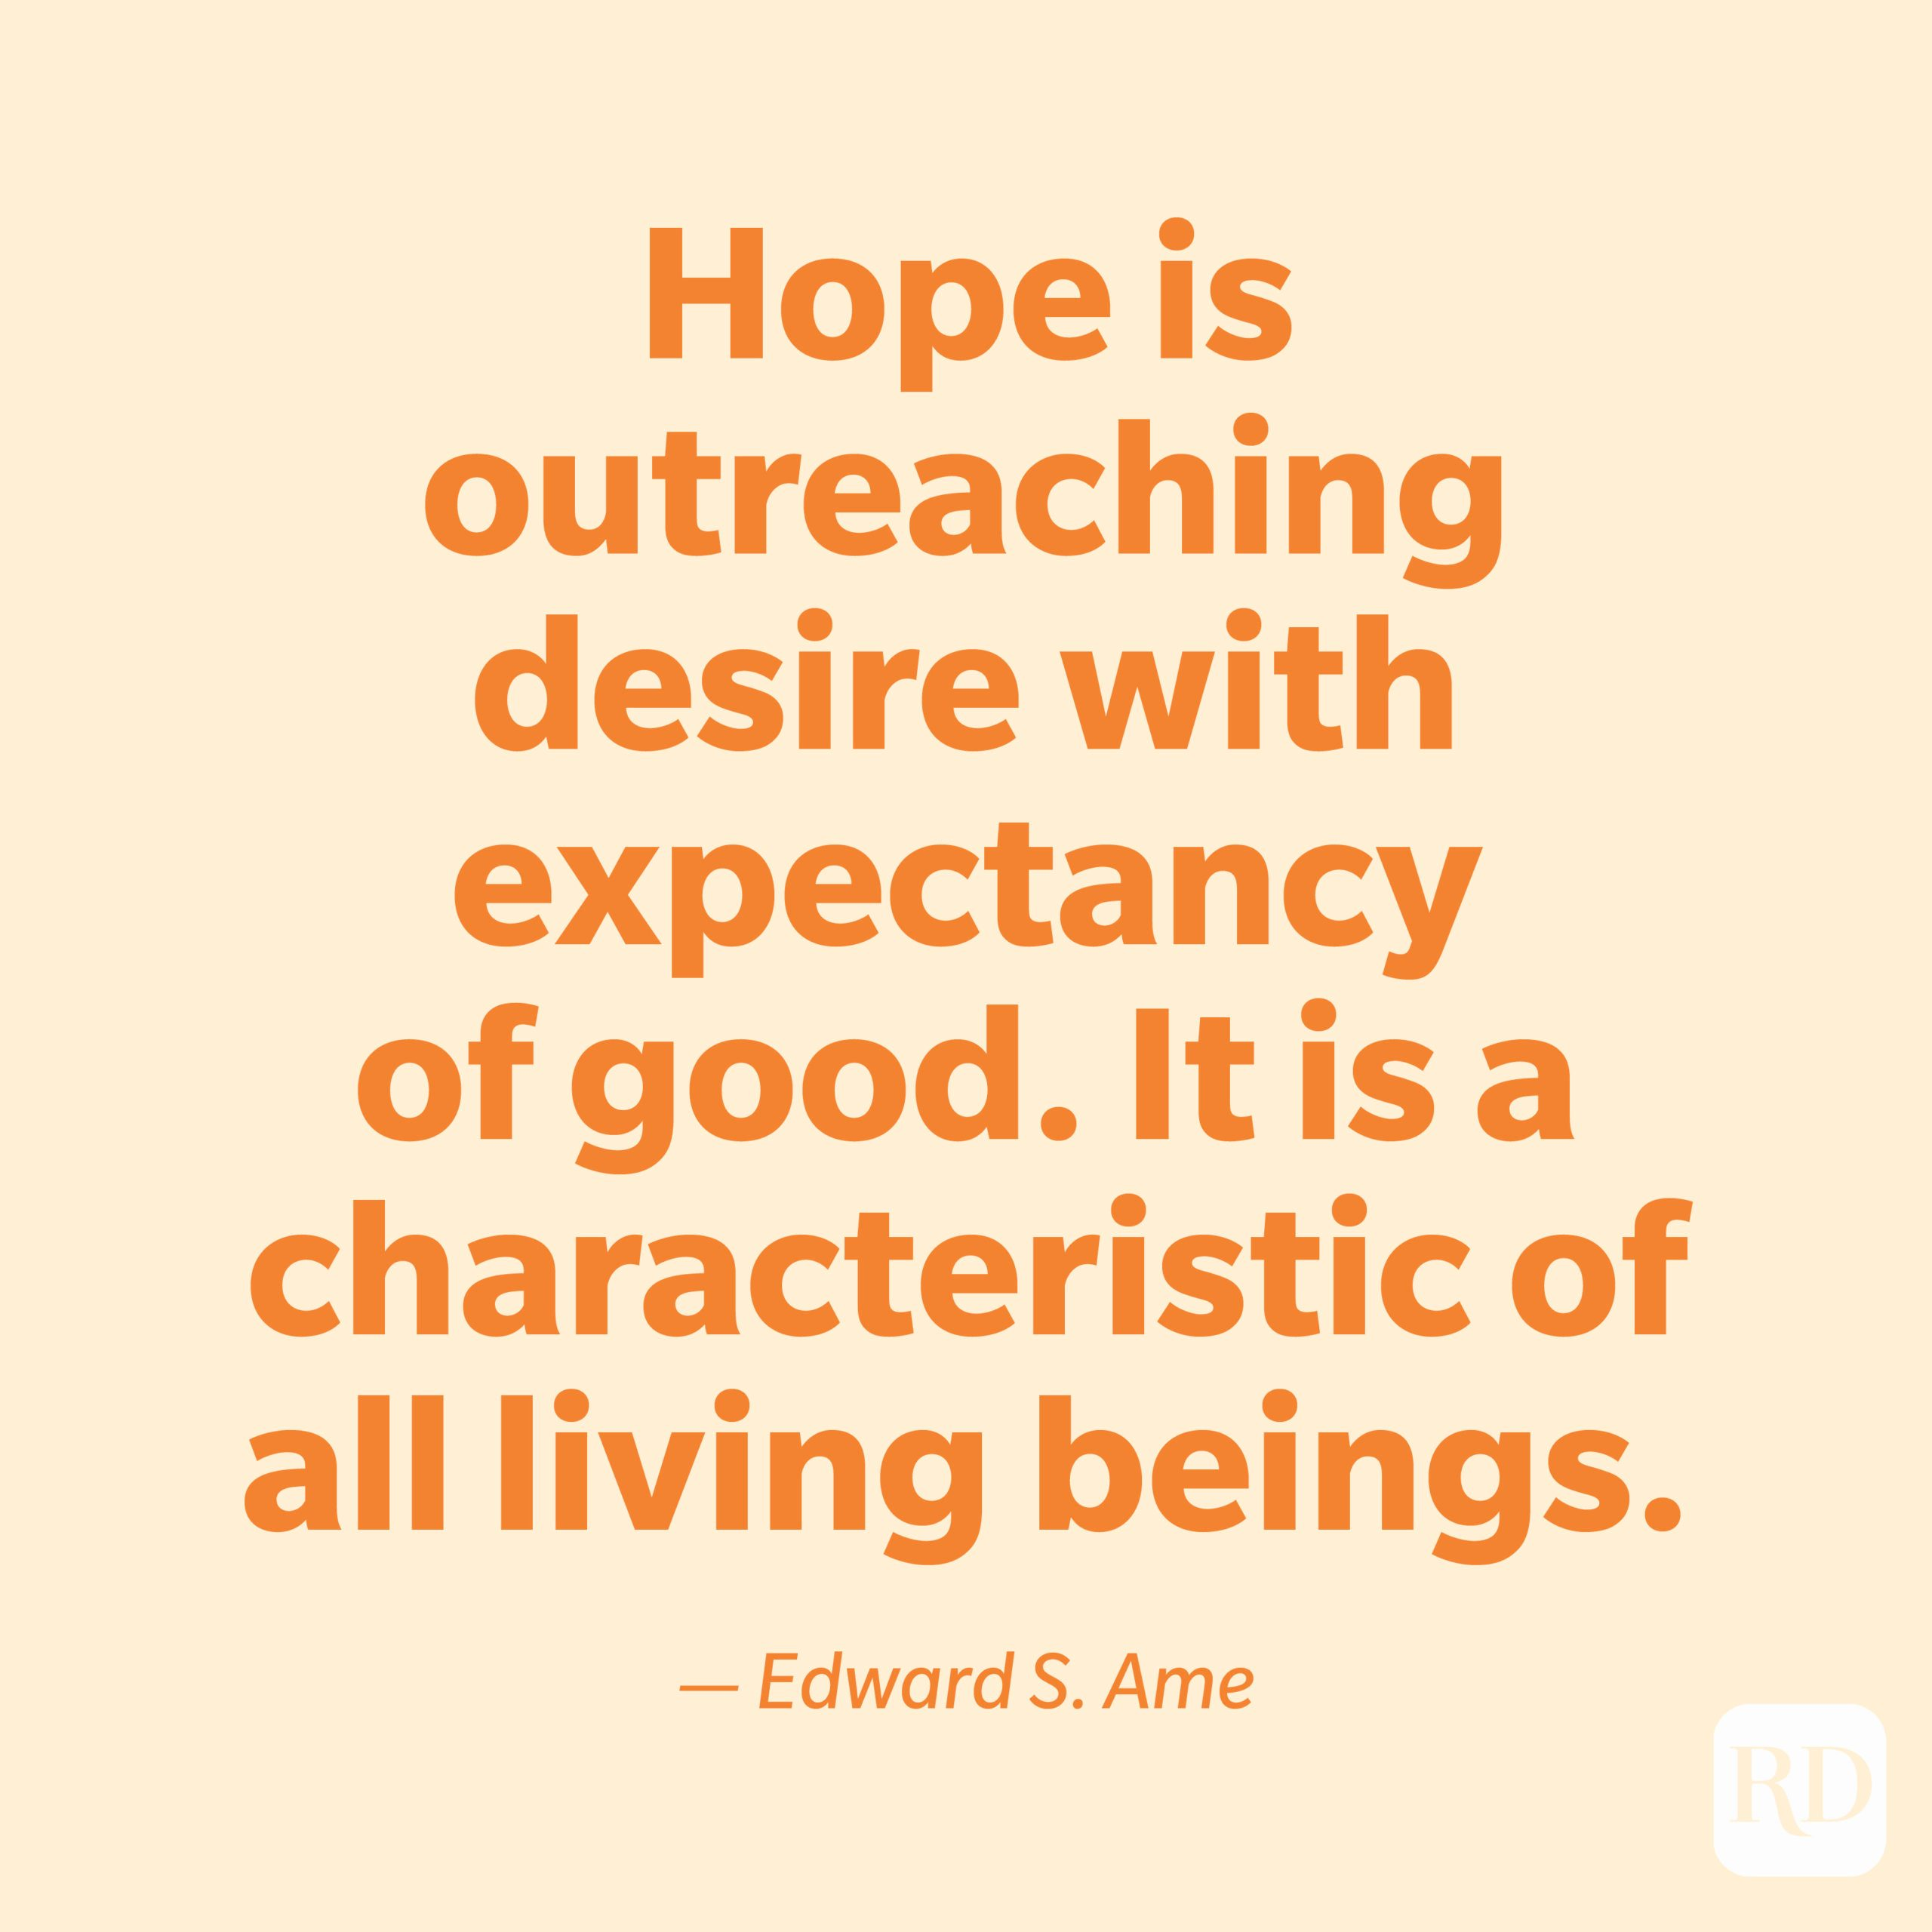 """""""Hope is outreaching desire with expectancy of good. It is a characteristic of all living beings."""" —Edward S. Ame."""